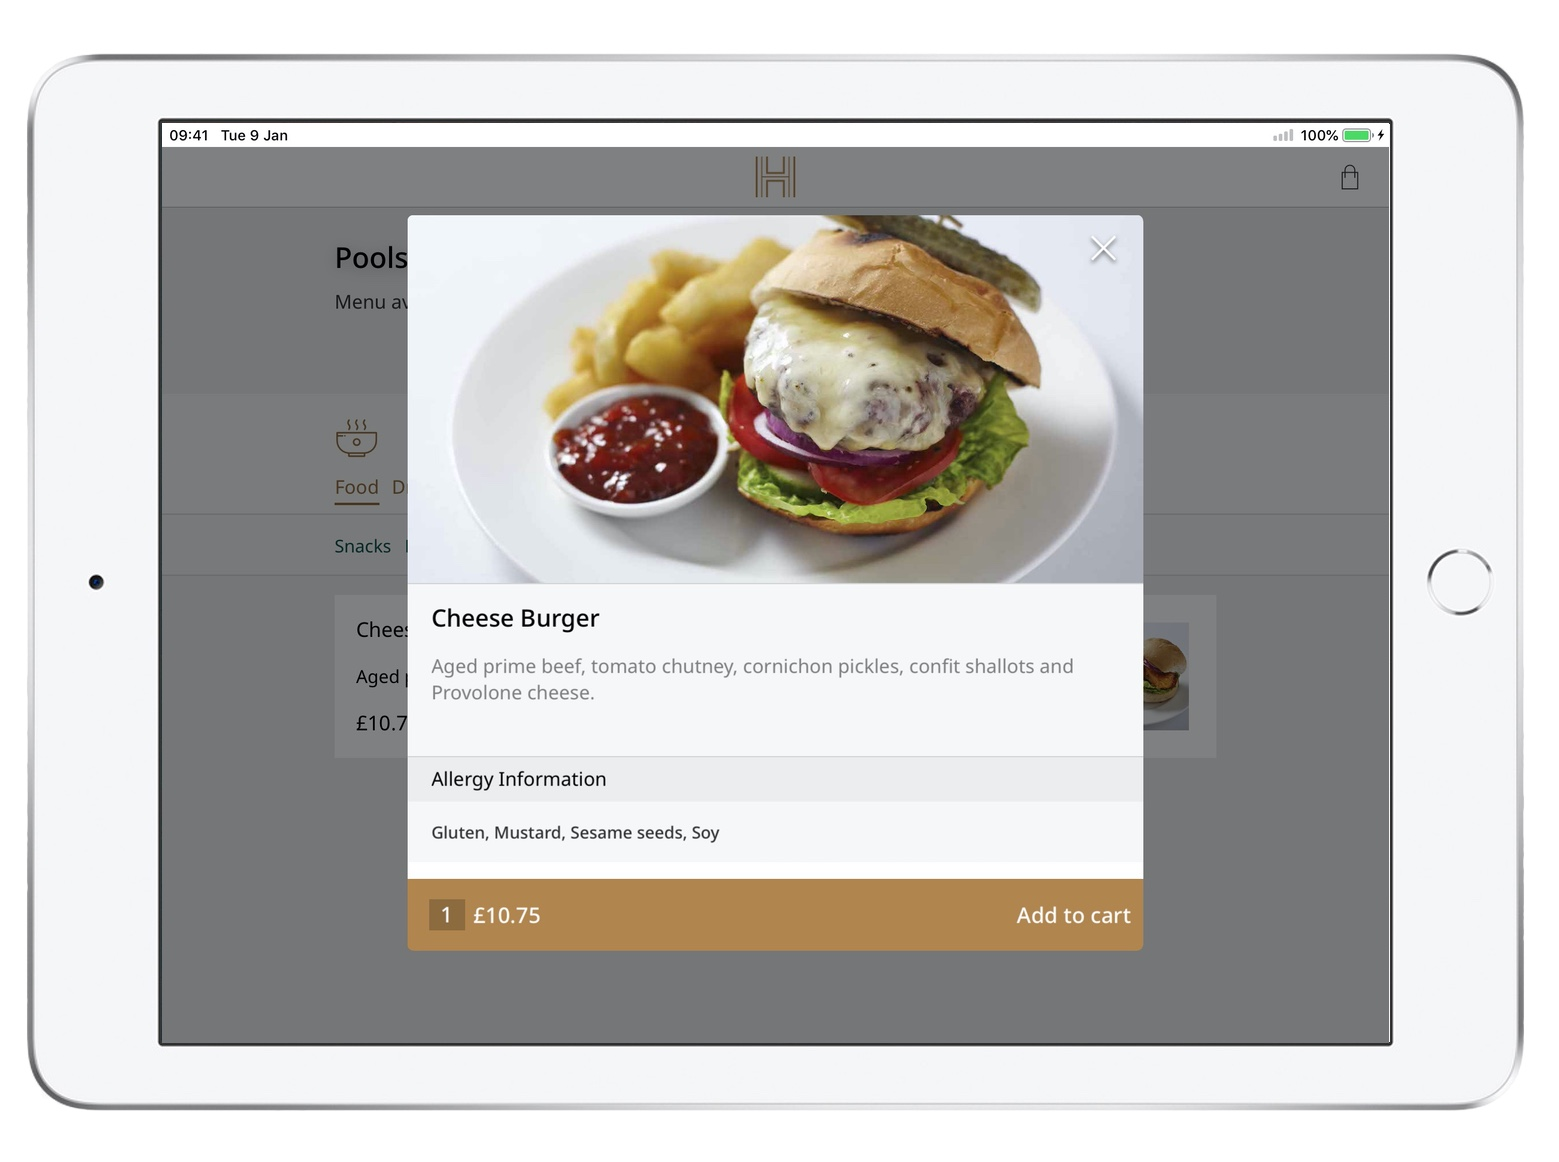 Outlet - All of your restaurant content will be available to your guests. Tell guests about dietary information, recommendations or the chef's note with our Item Attributes feature. Let them customise their order with Item Modifiers feature.